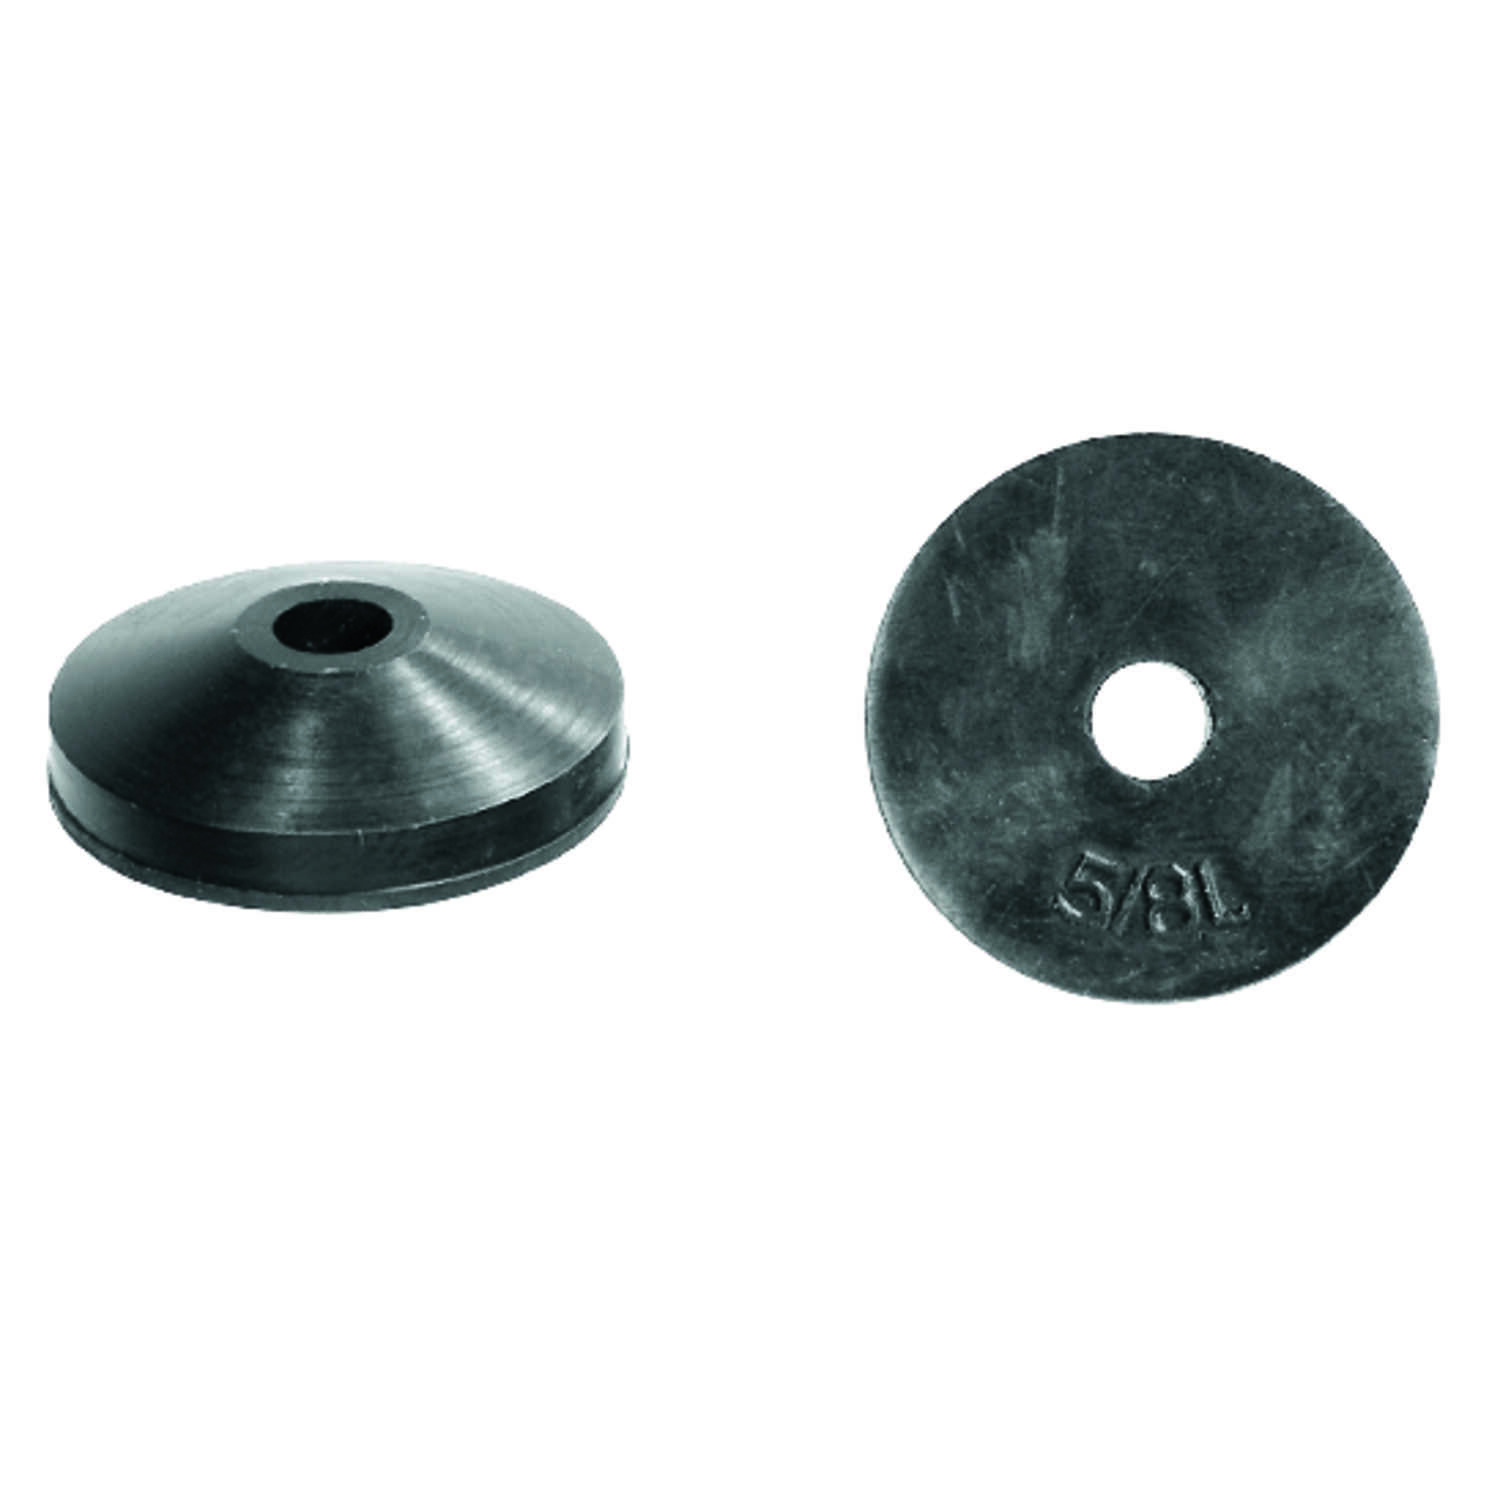 Danco  5/8 in. Dia. Synthetic Rubber  Washer  5